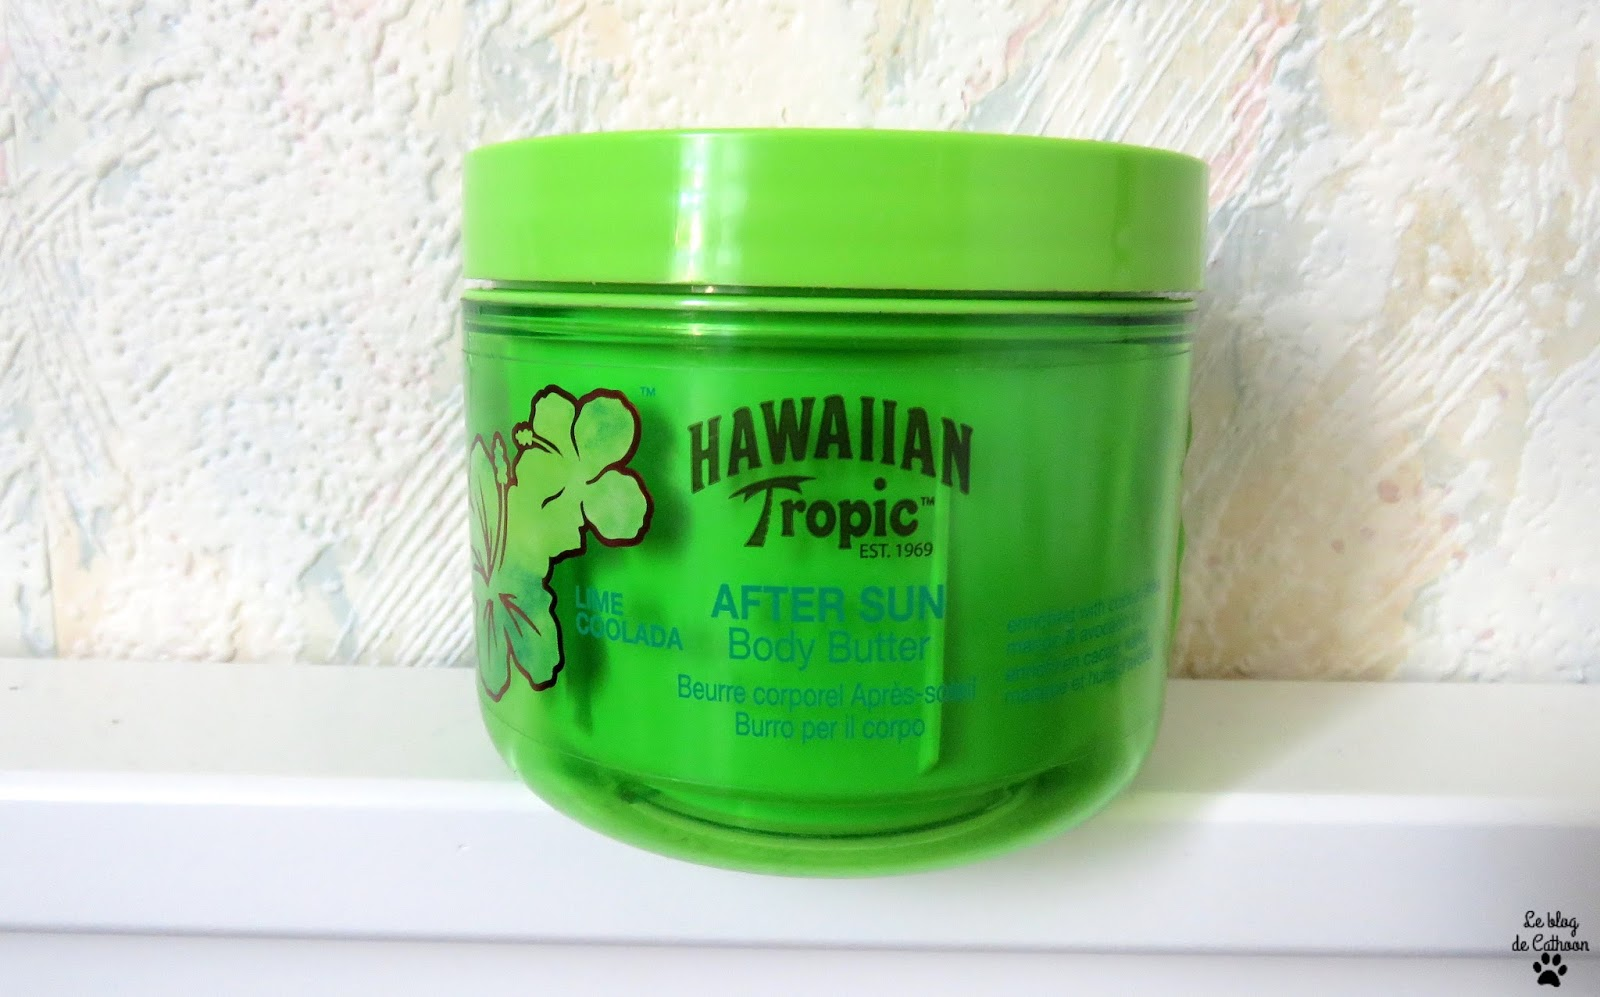 After Sun - Body Butter - Lime Coolada - Hawaiian Tropic